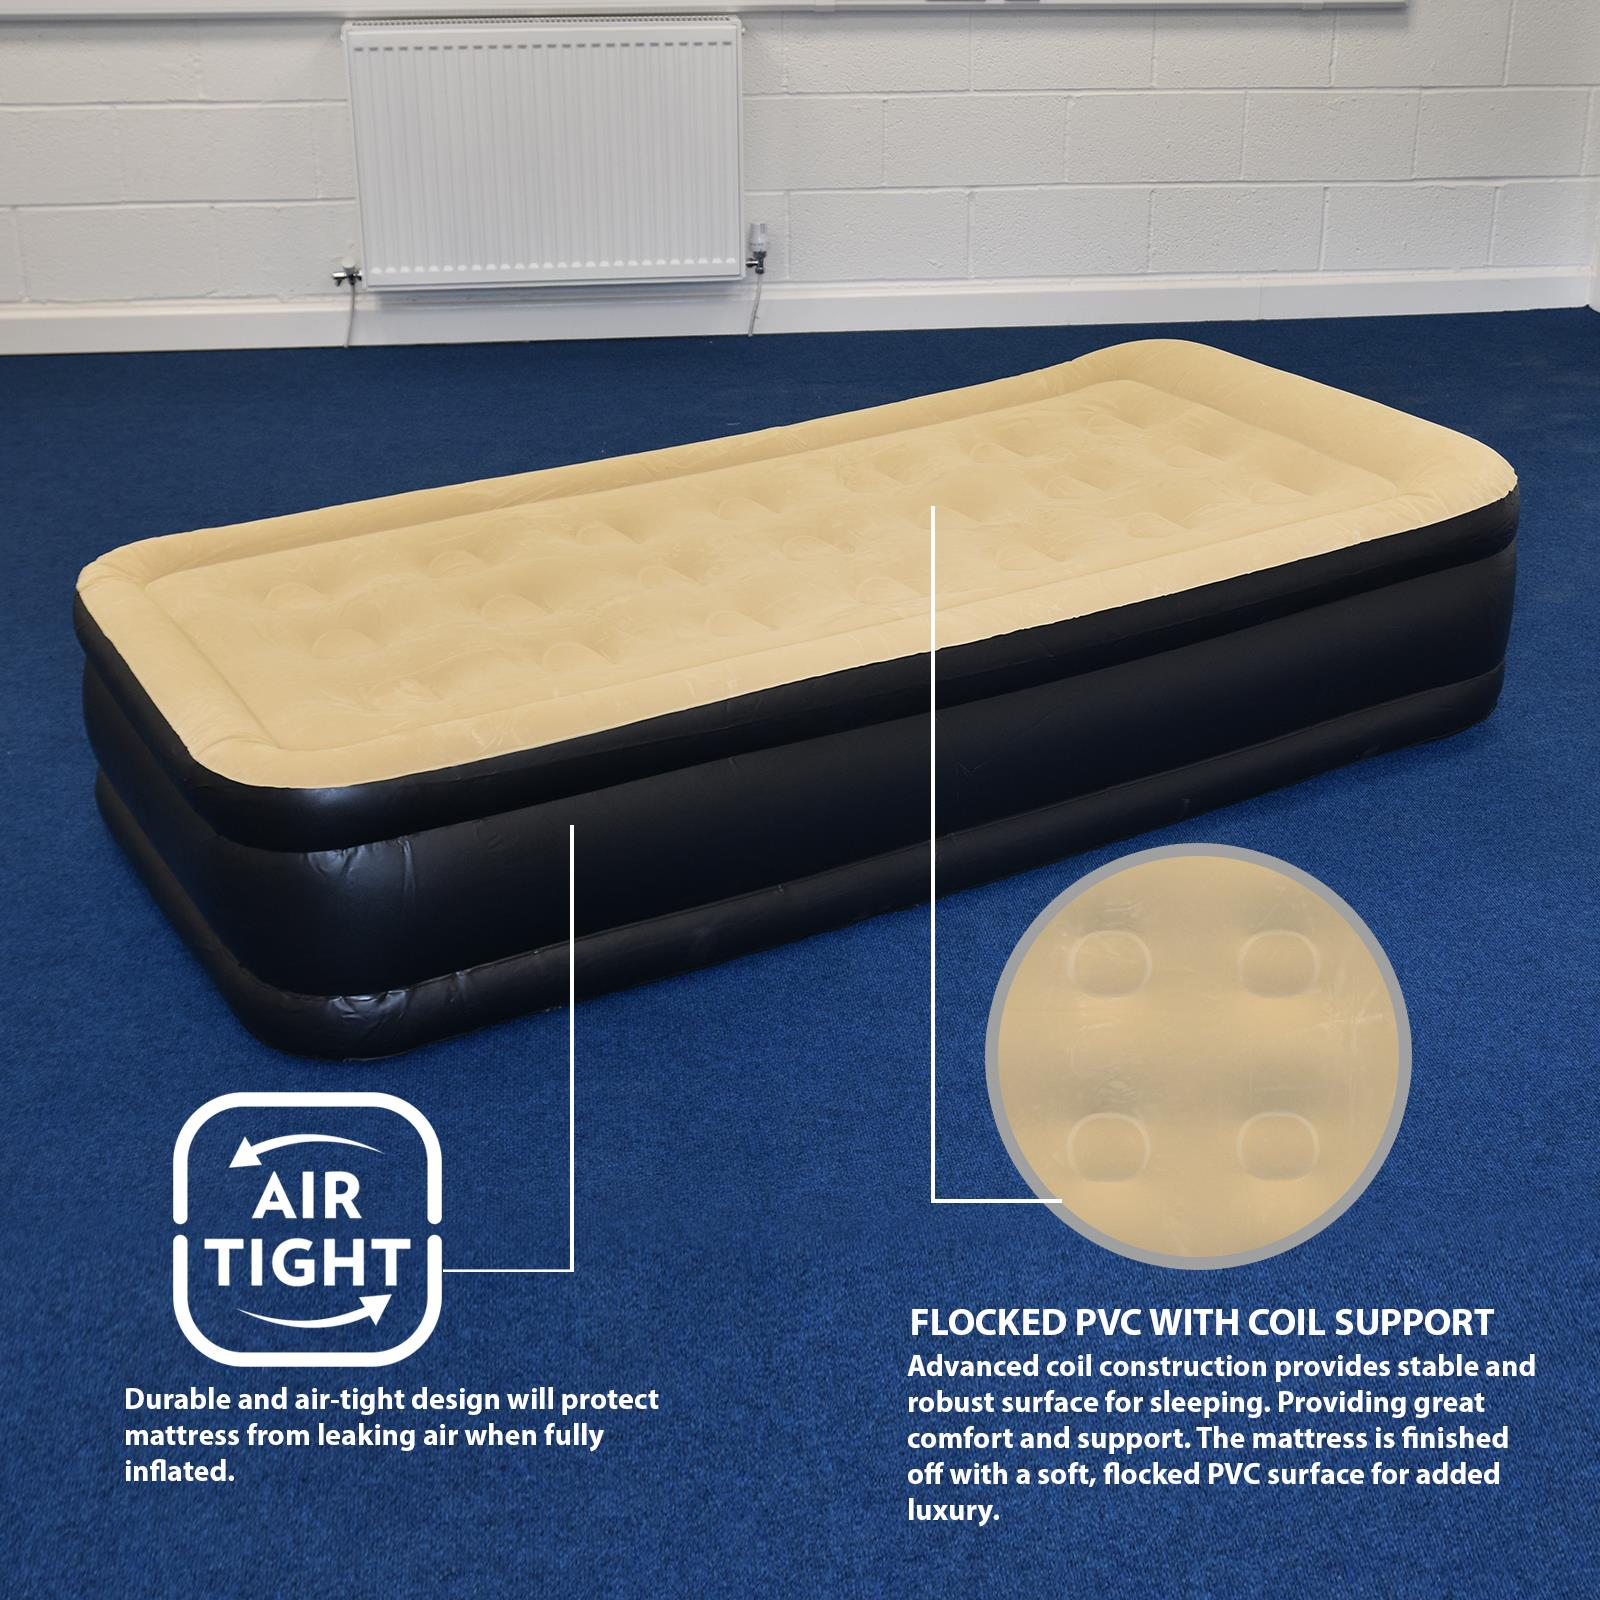 Jilong-Luxury-Air-Bed-Mattress-Soft-Flocked-Inflatable-Relaxing-Airbed-Camping thumbnail 14